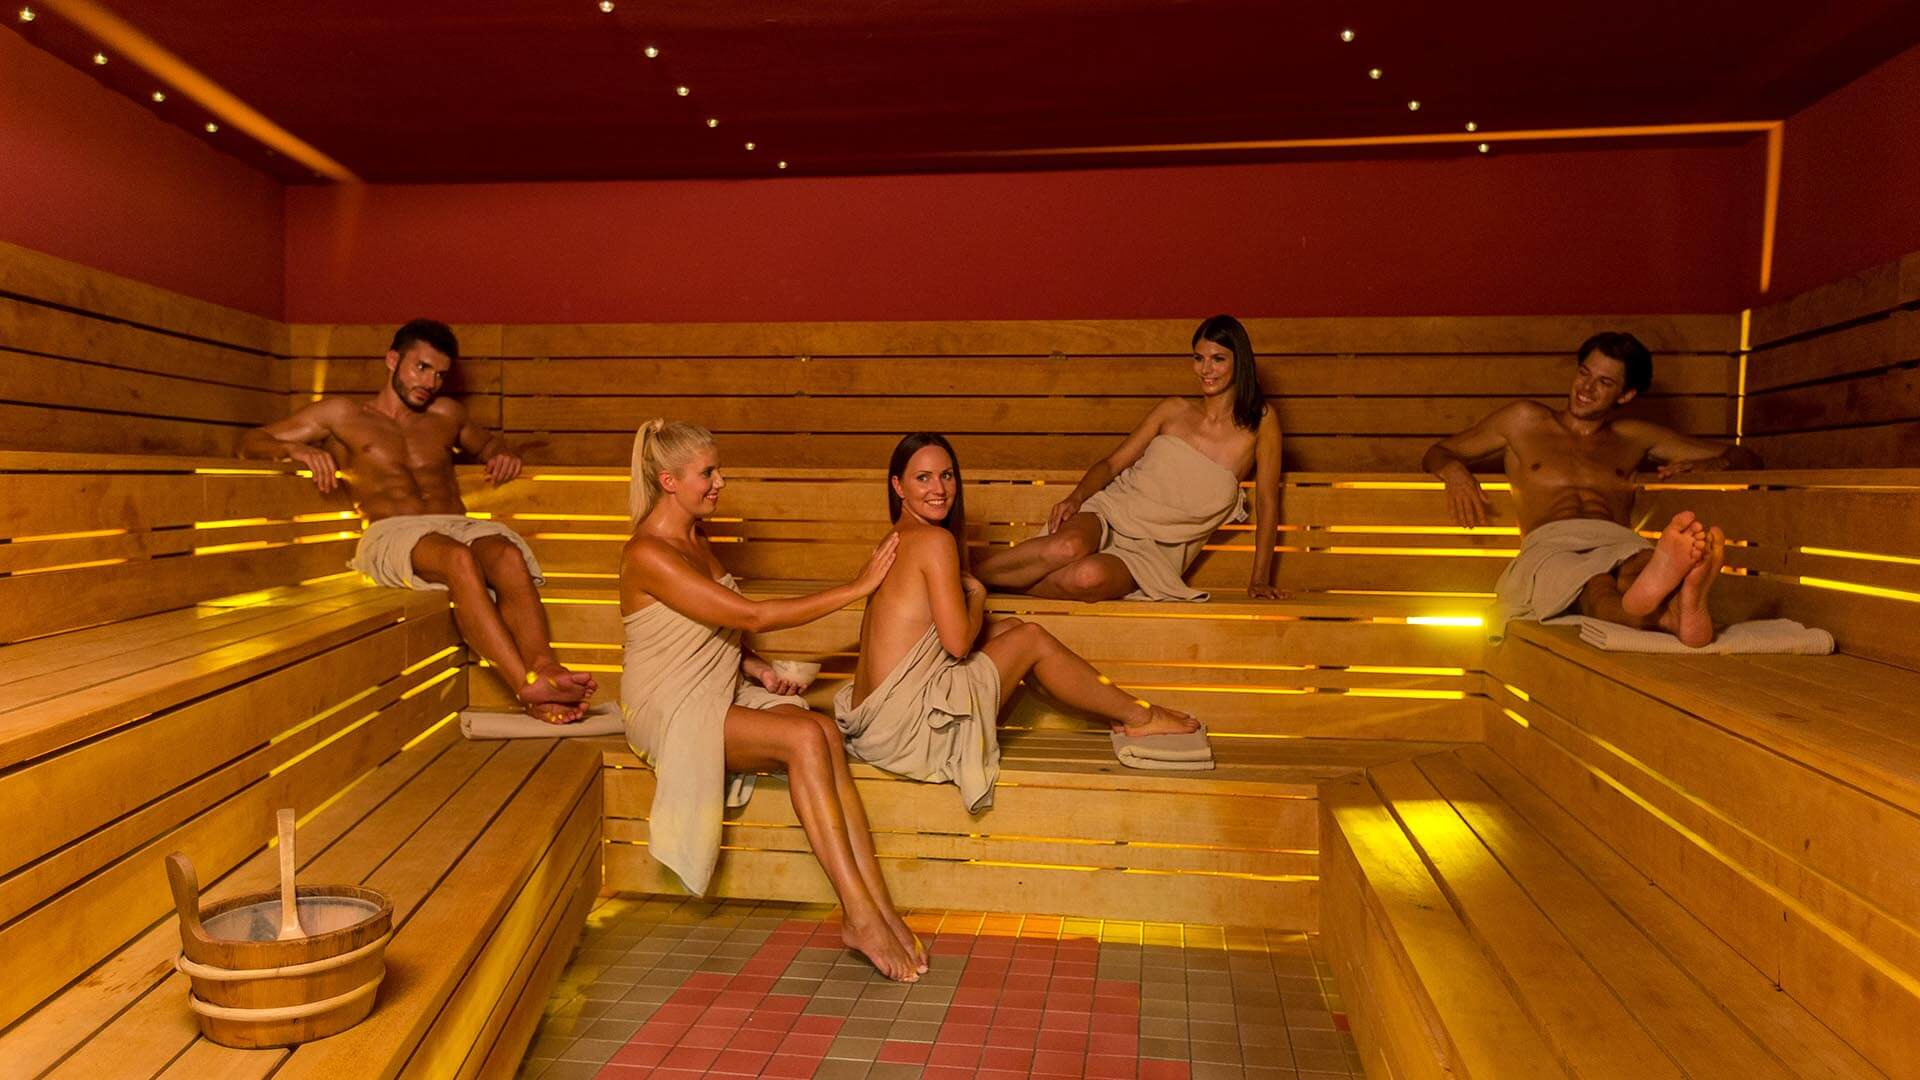 sauna-world-terme-tuhelj-384